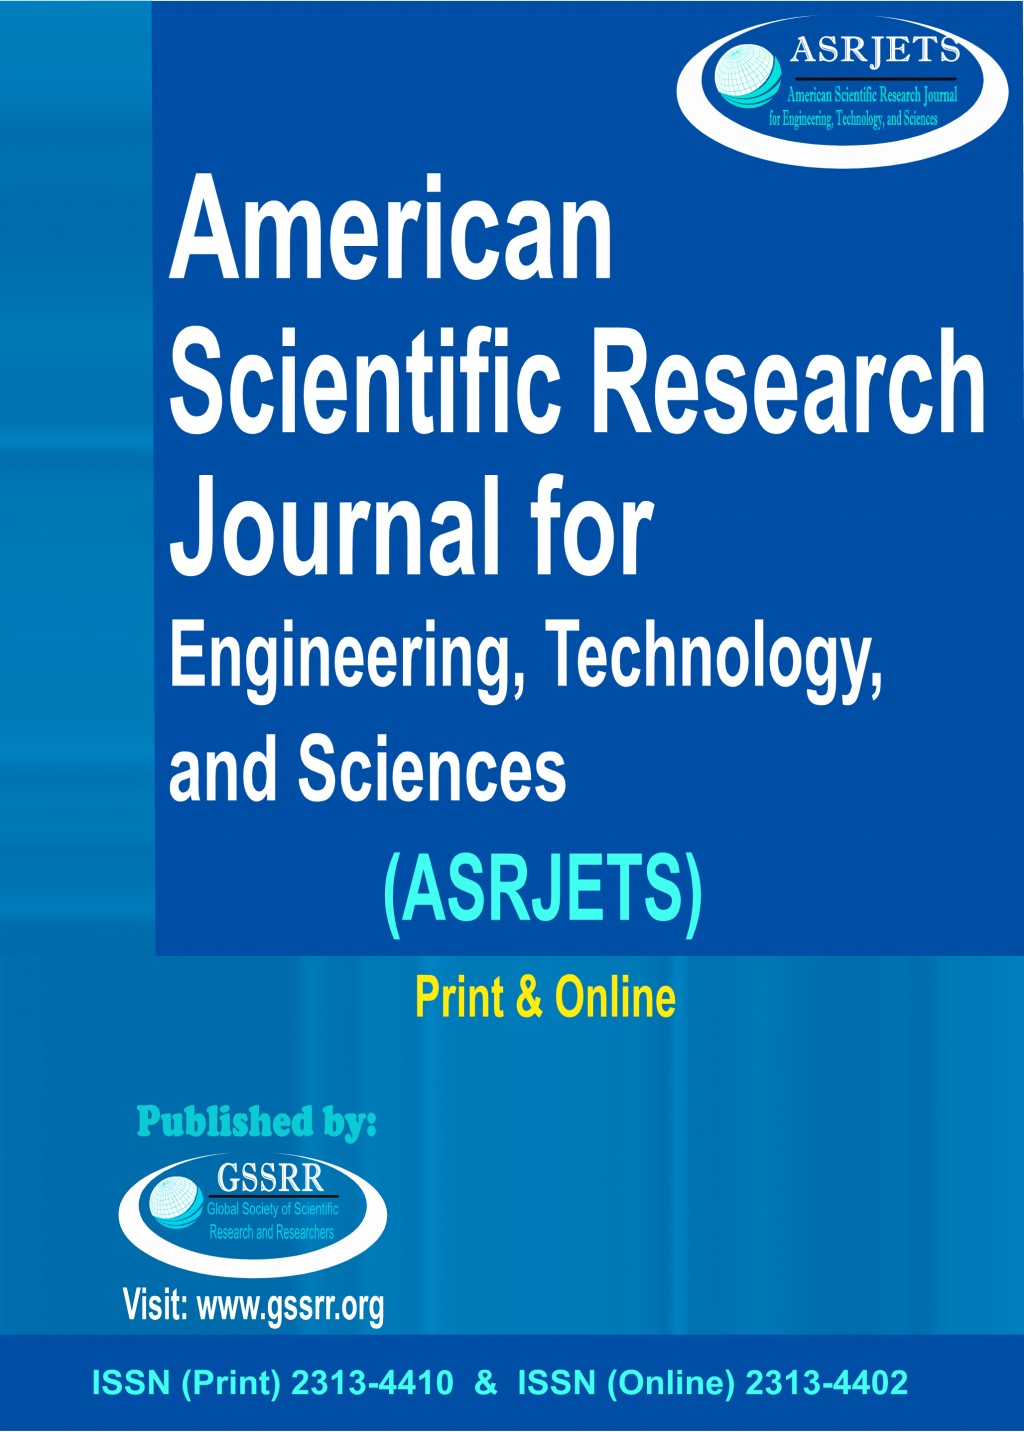 003 How To Publish Research Paper In Computer Science Fearsome A Large